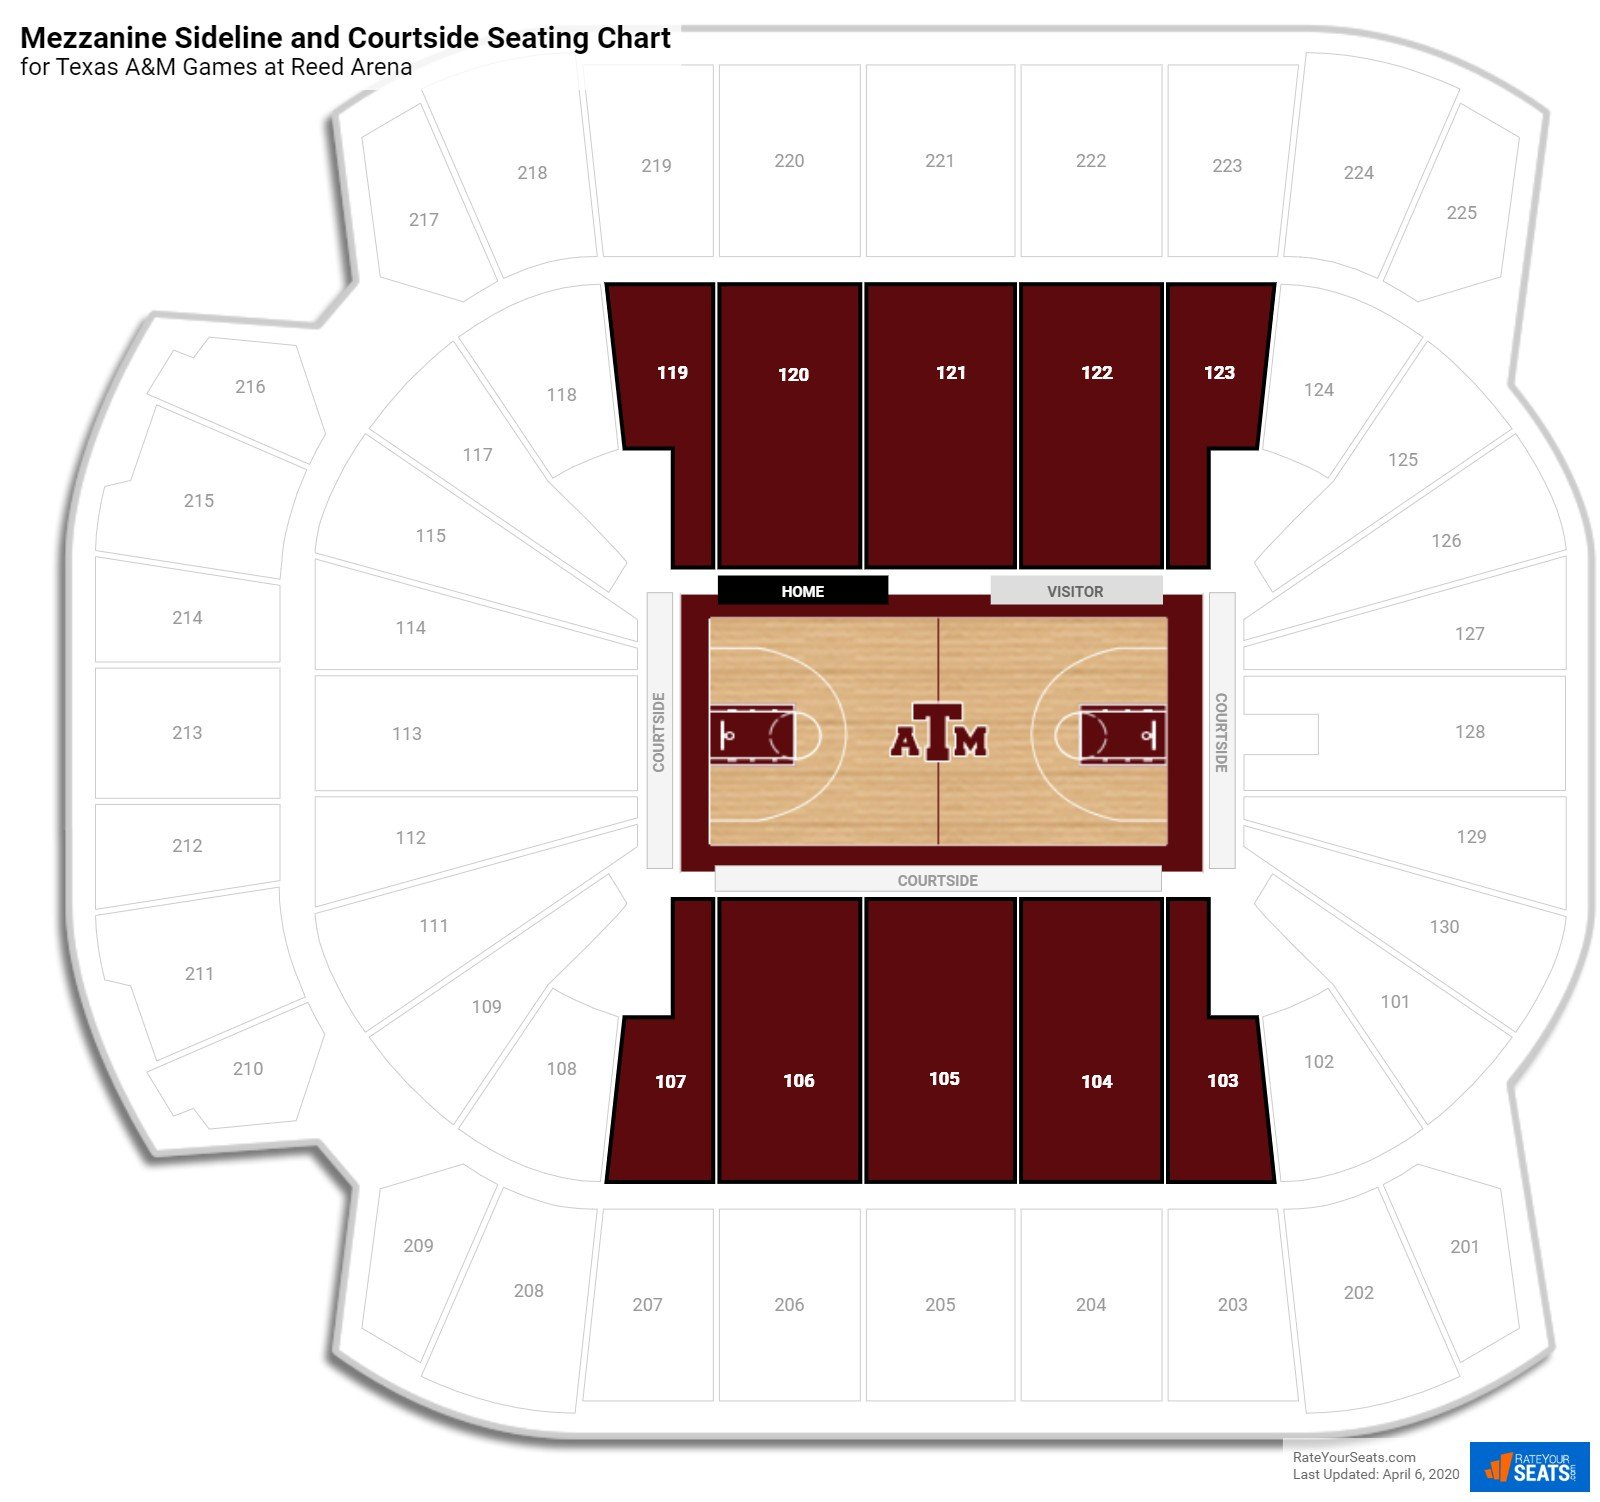 Reed Arena (Texas A&M) Seating Guide